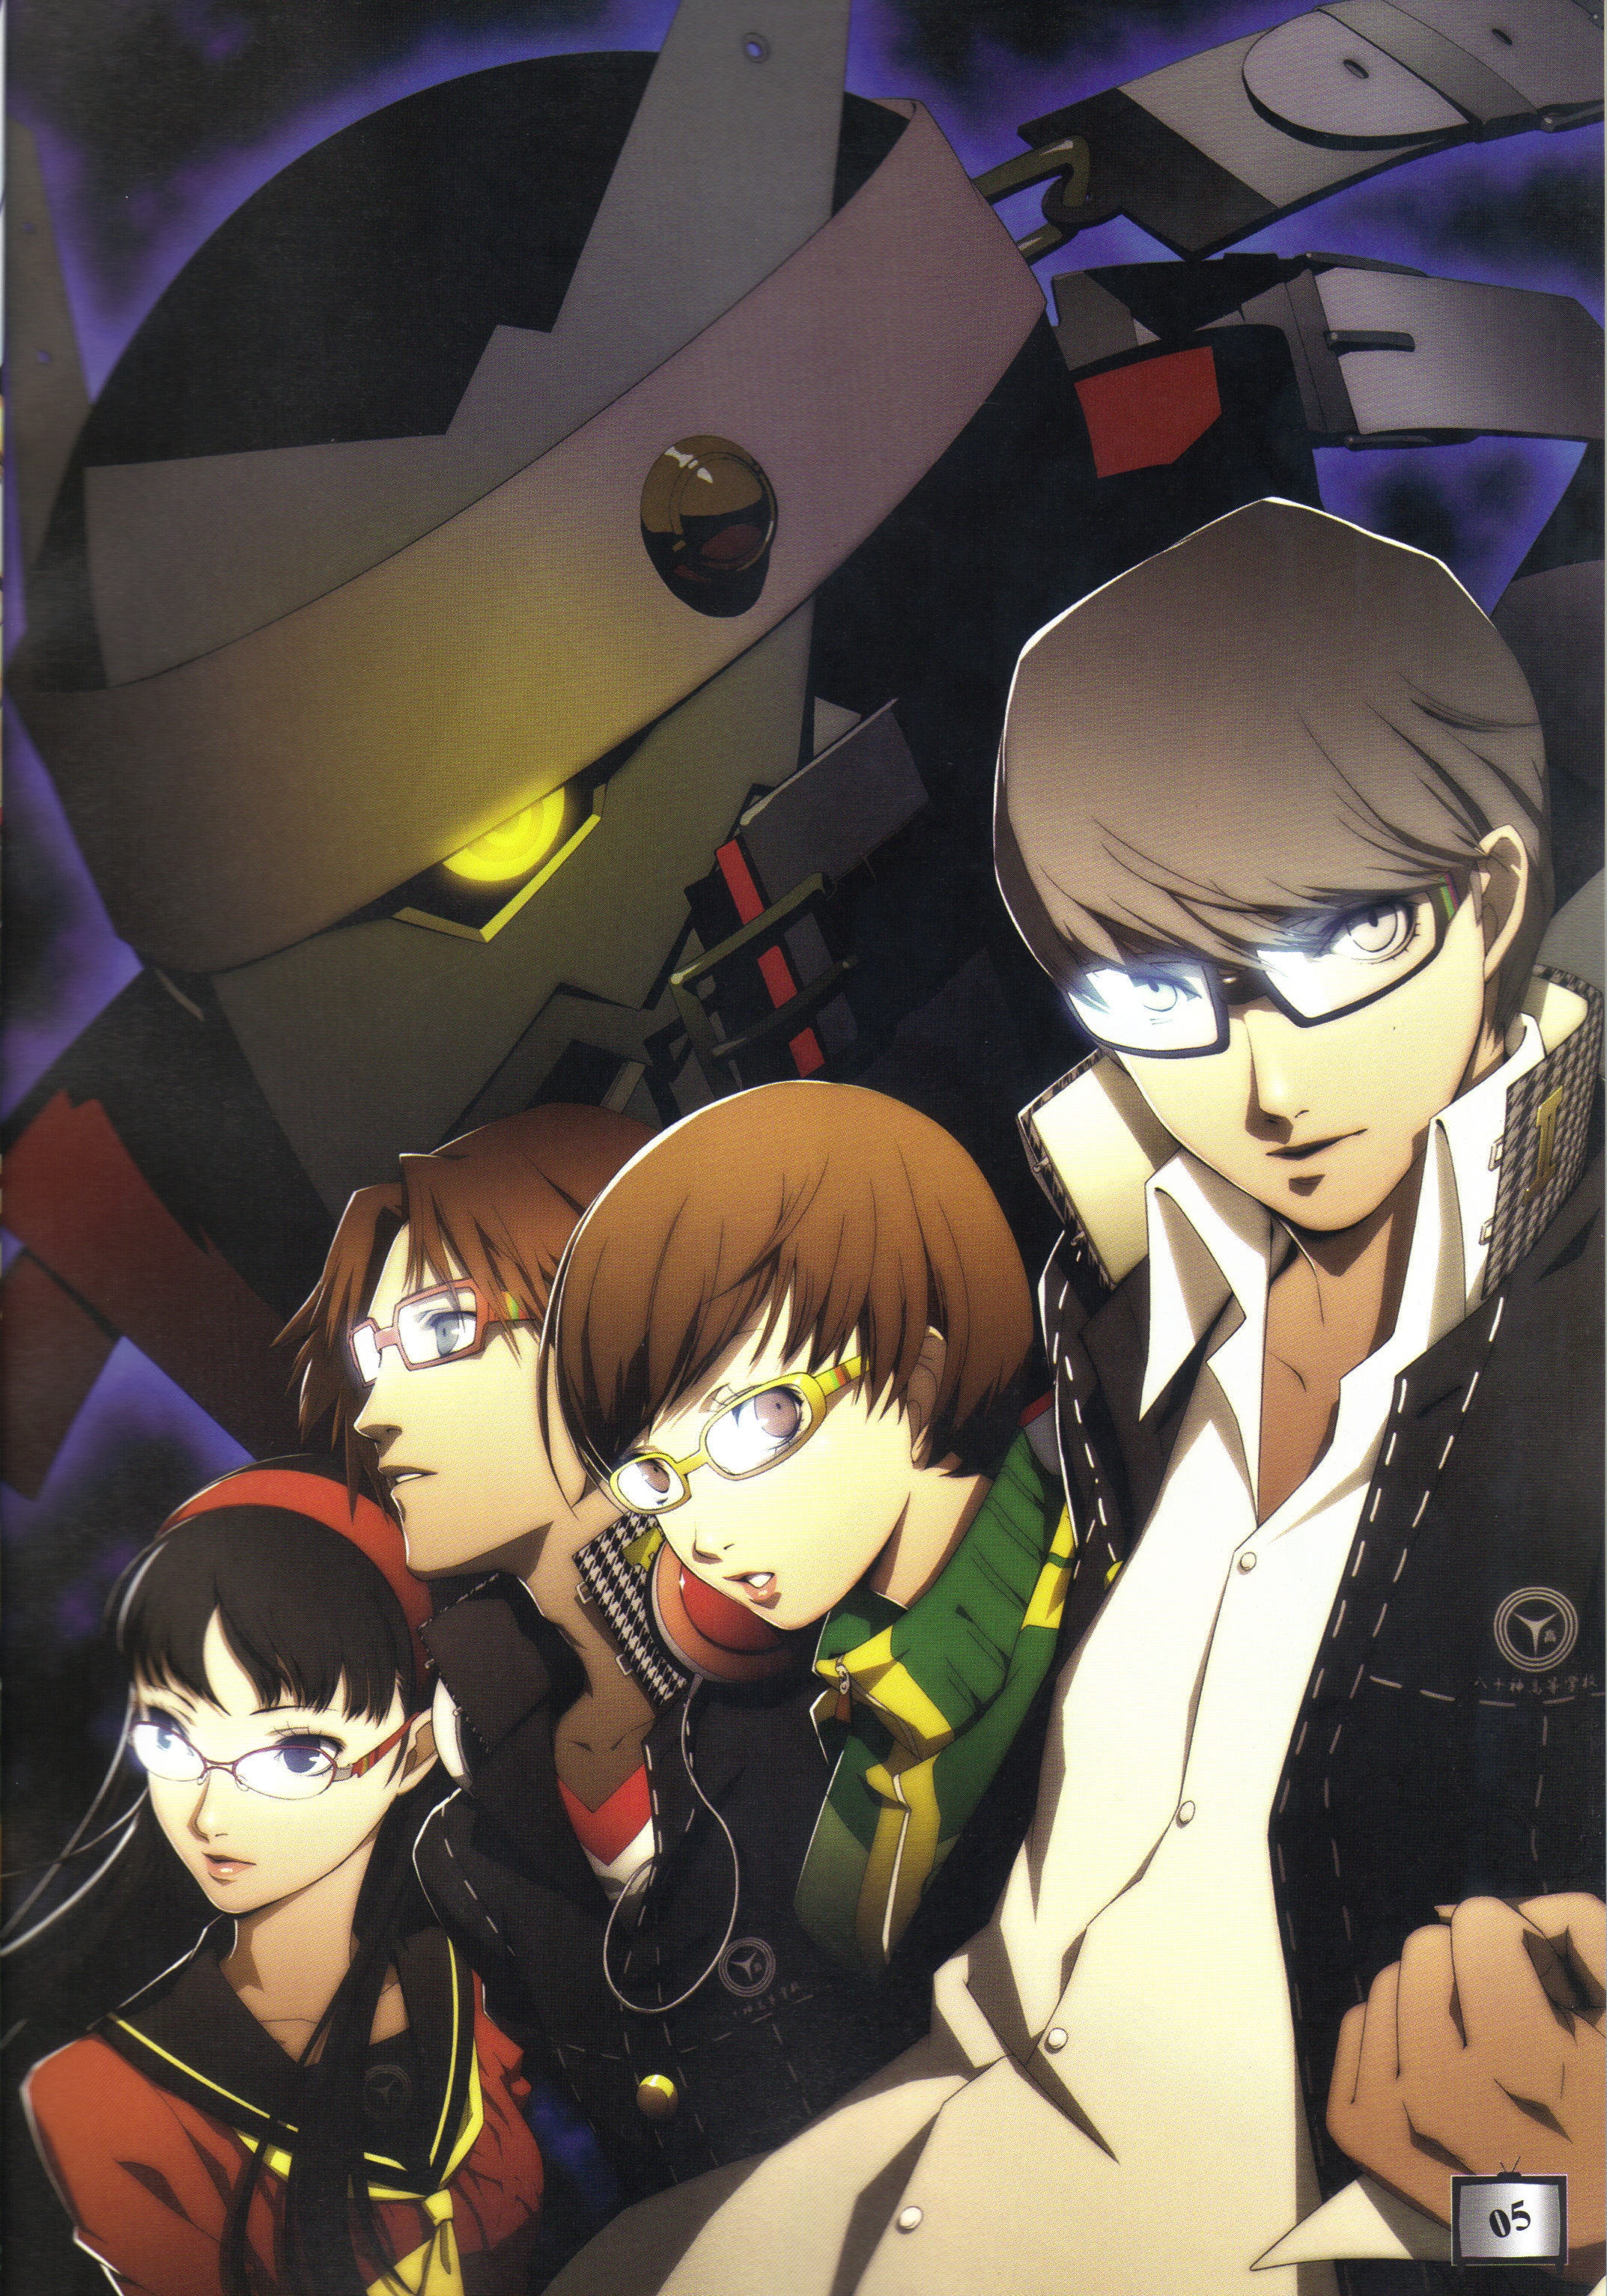 P4 Official Design Works - Shin Megami Tensei: PERSONA 4